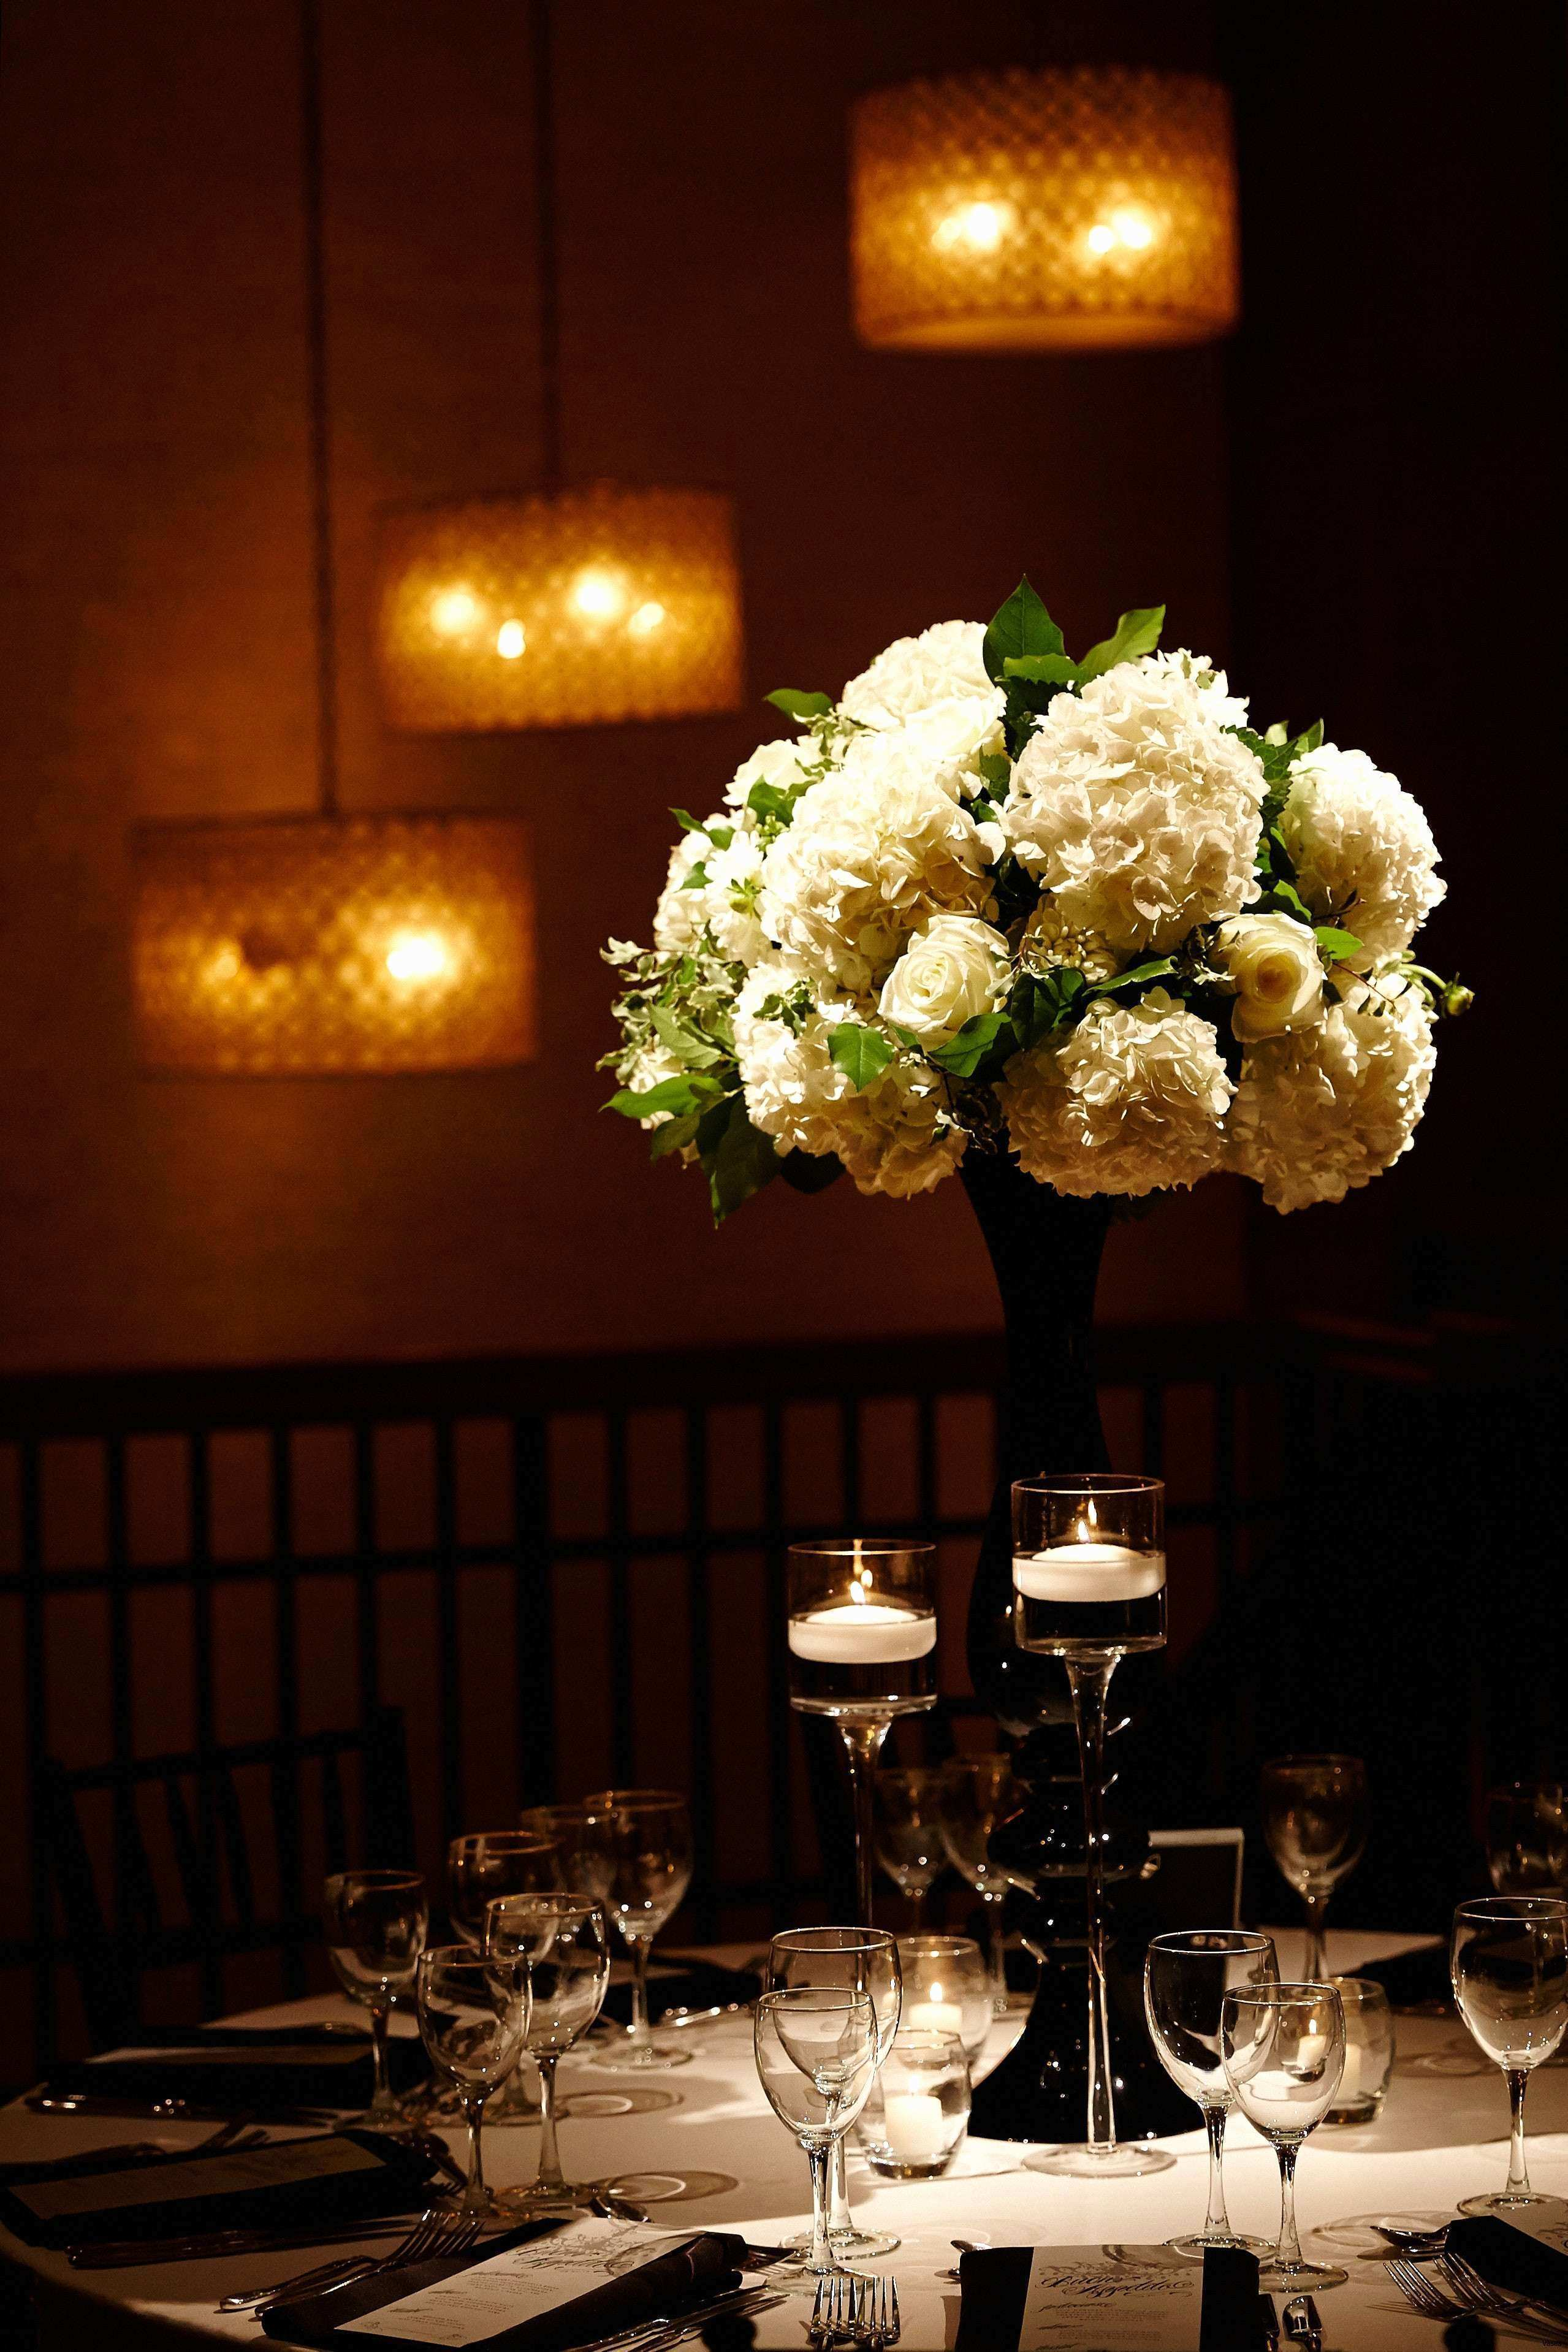 23 New White and Gold Table Decorations